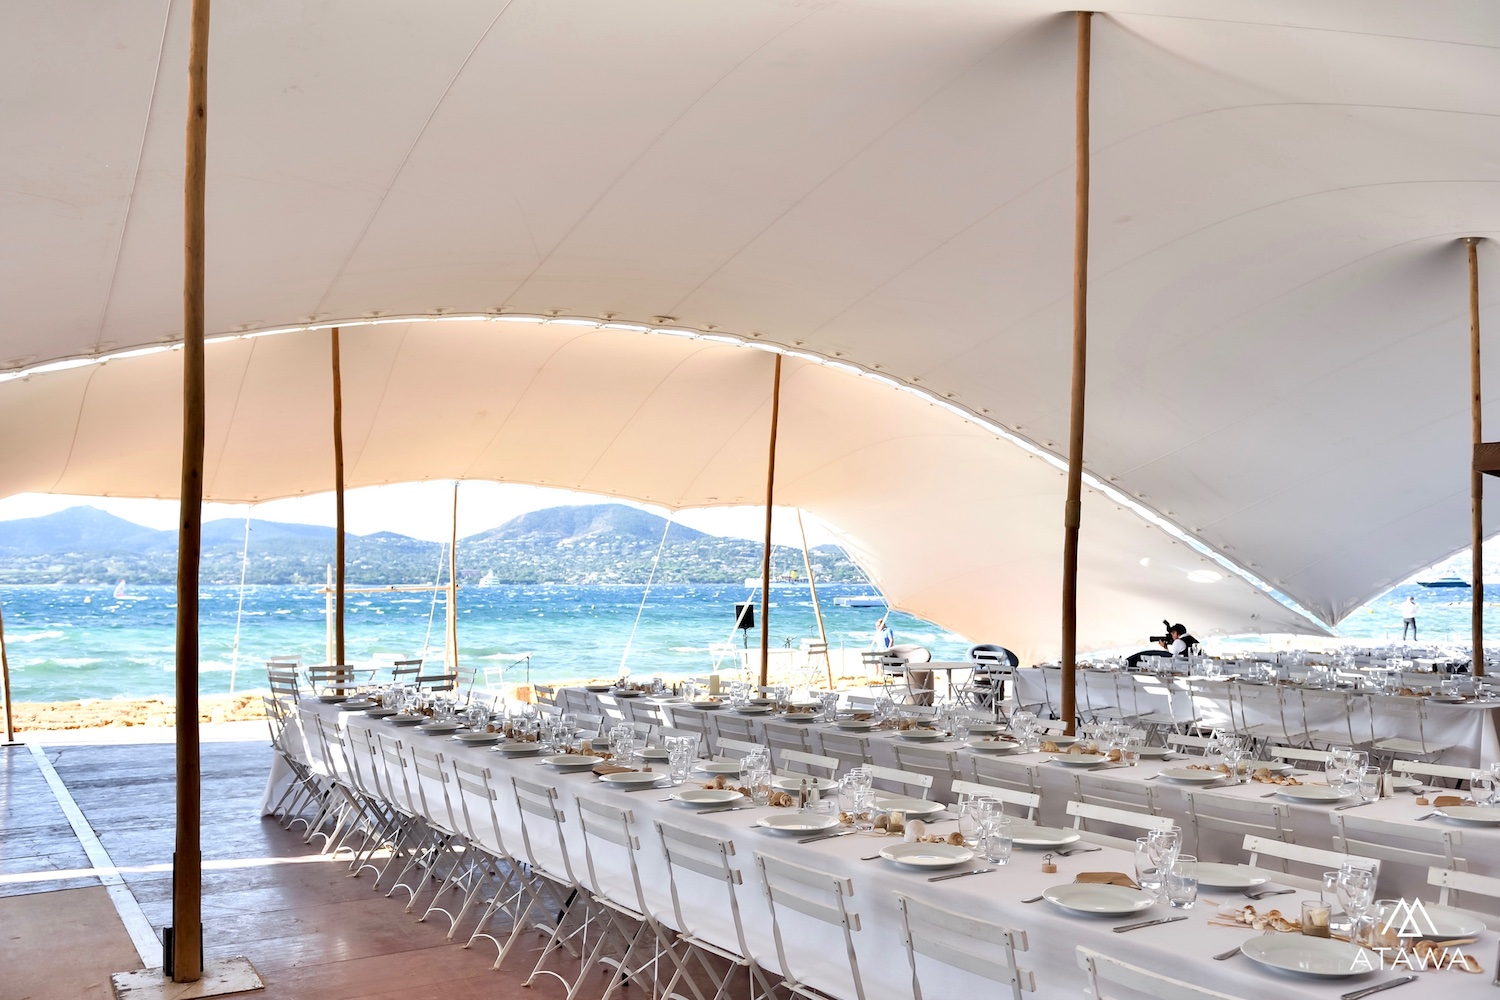 Article_Atawa_location_tente_mobilier_evenement_mariage_a_st_tropez_5.jpg